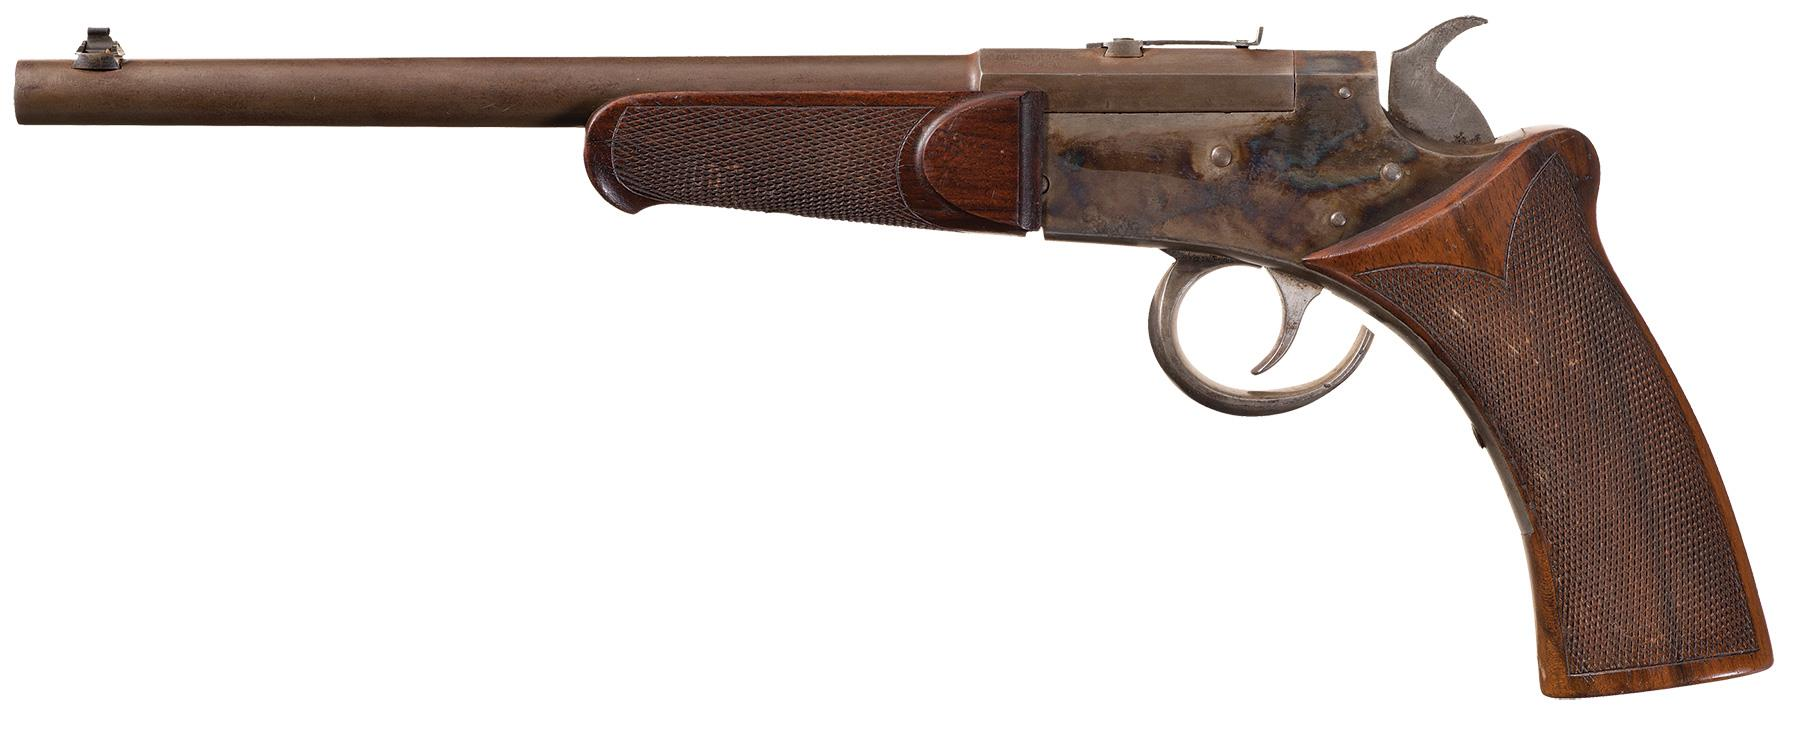 This American pistol is marked as being made by the Target Pistol Company of Philadelphia.